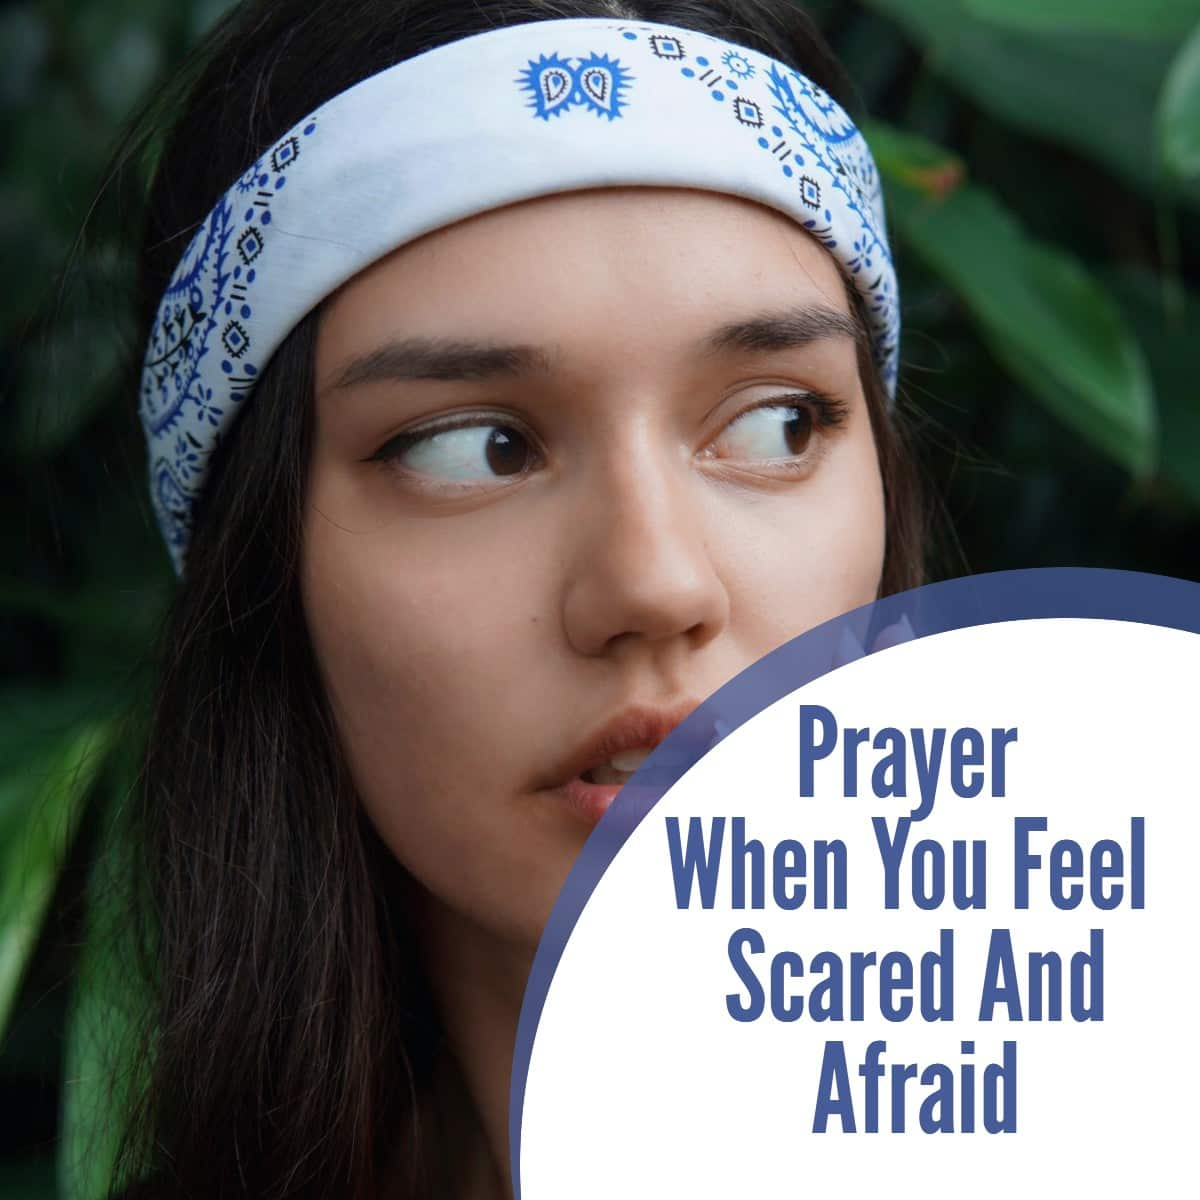 Prayer When You Feel Scared And Afraid